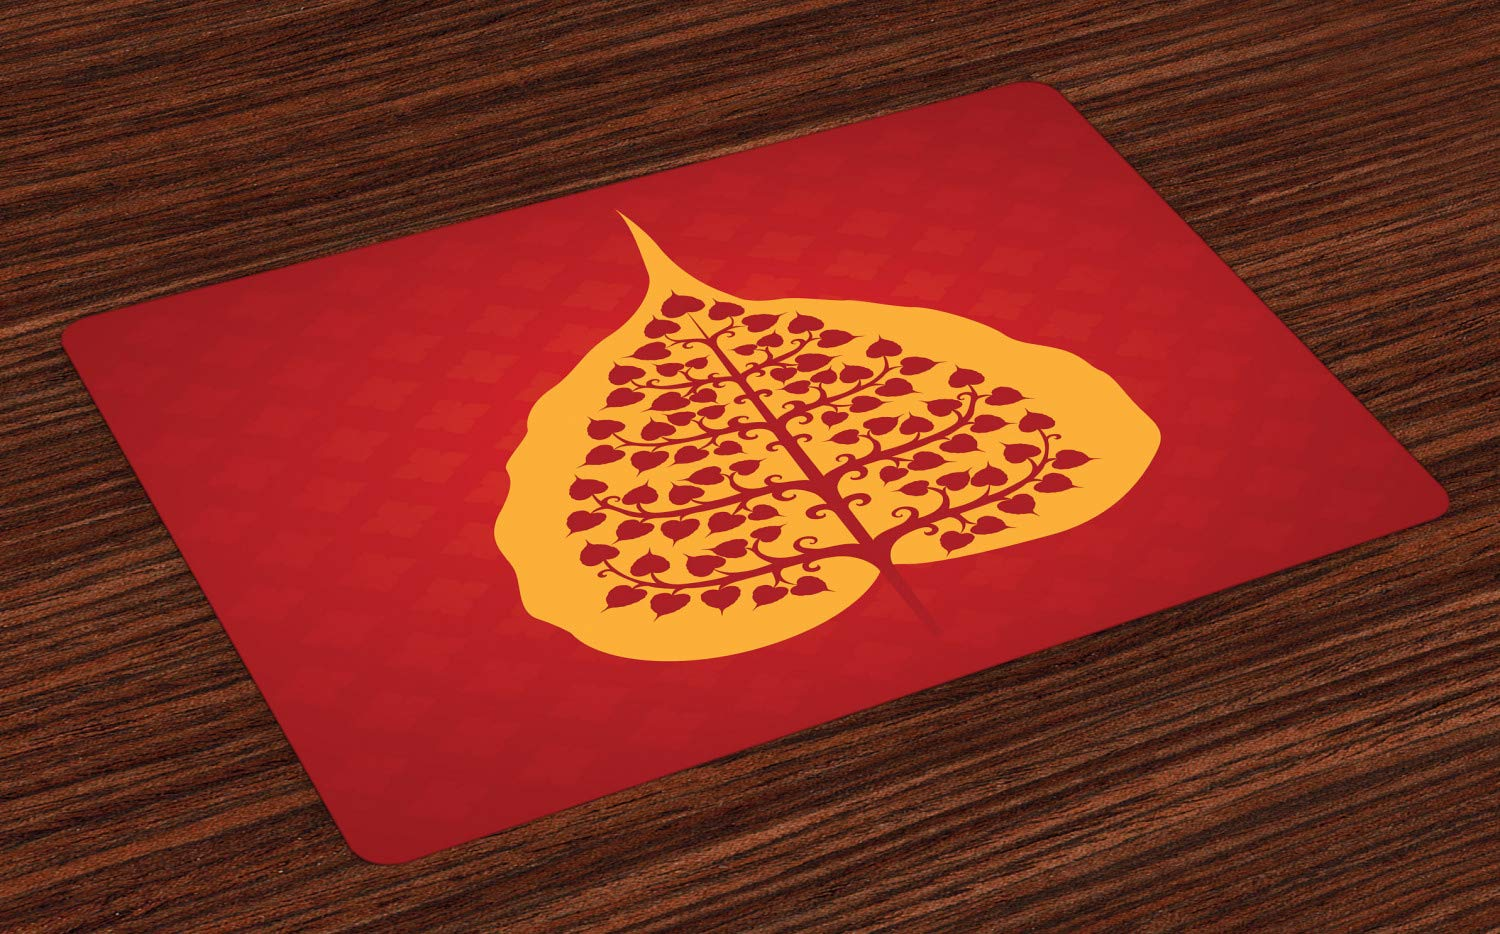 Ambesonne Leaf Place Mats Set of 4, Design of Bodhi Tree Nature and Yoga Meditation, Washable Fabric Placemats for Dining Table, Standard Size, ...